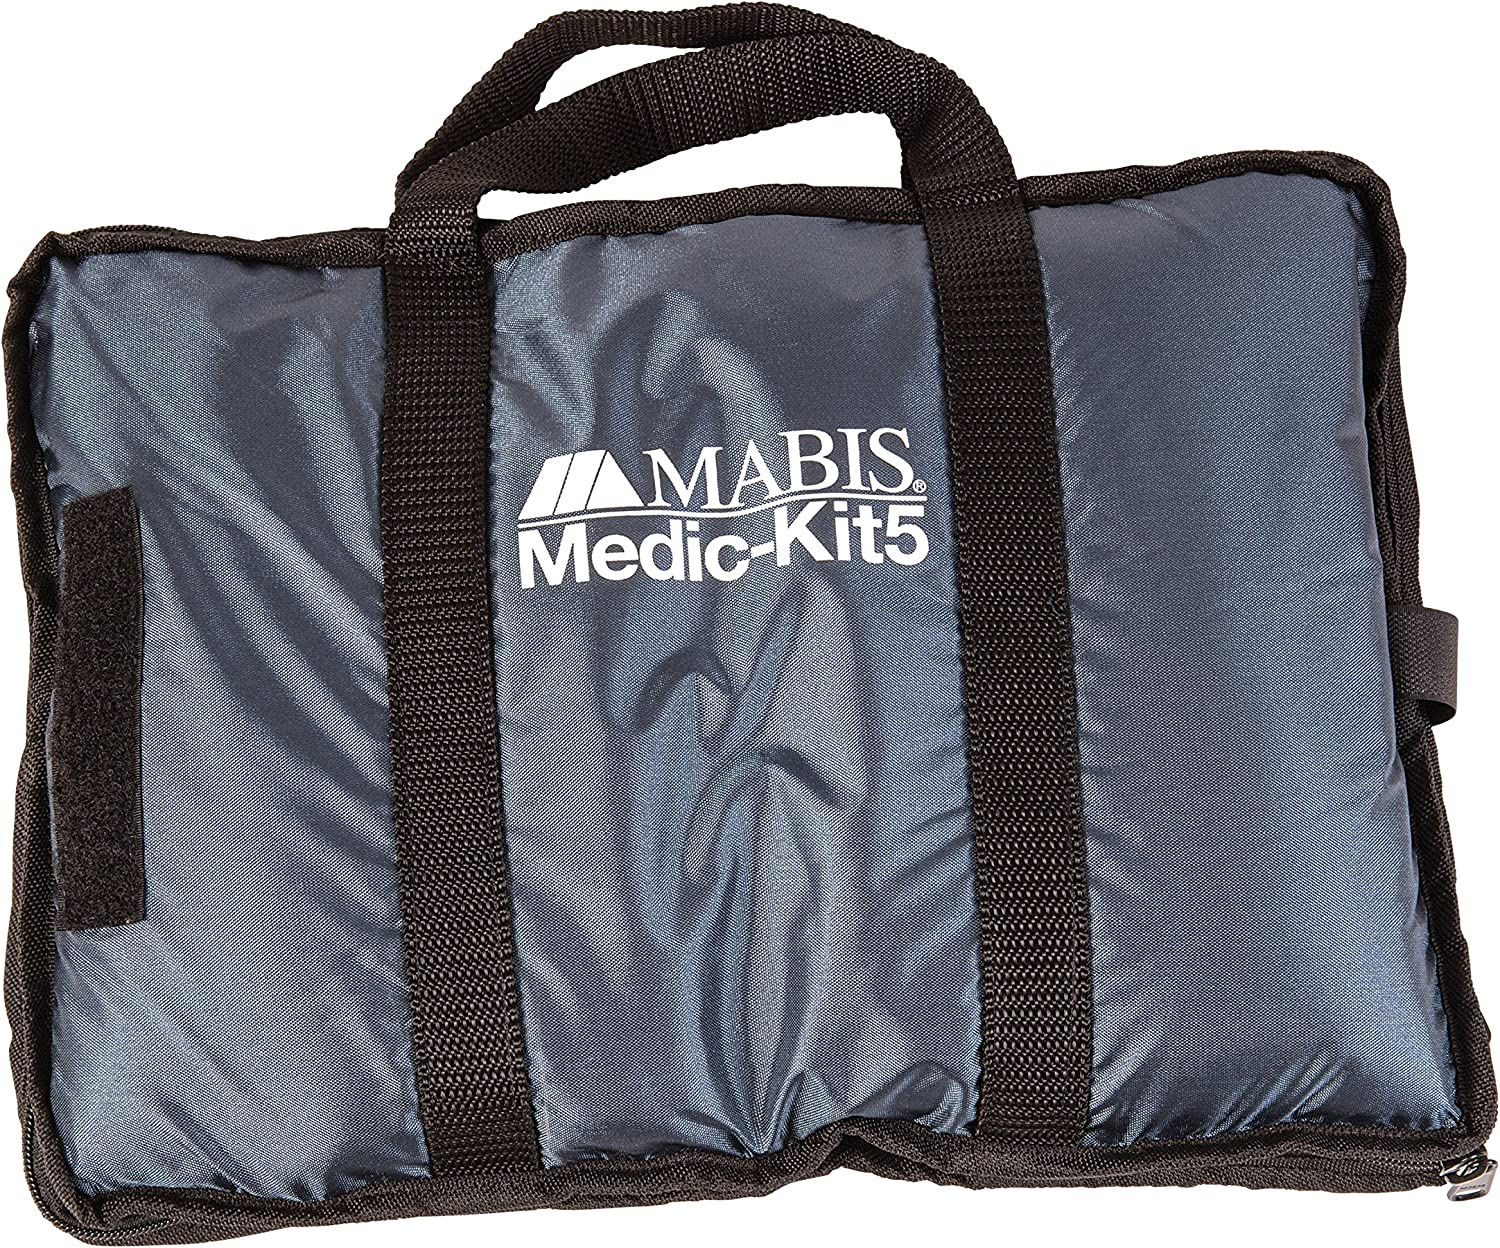 Great interest Surprise price MABIS Medic-Kit5 EMT and Paramedic First Kit 5 Calibrat Aid with